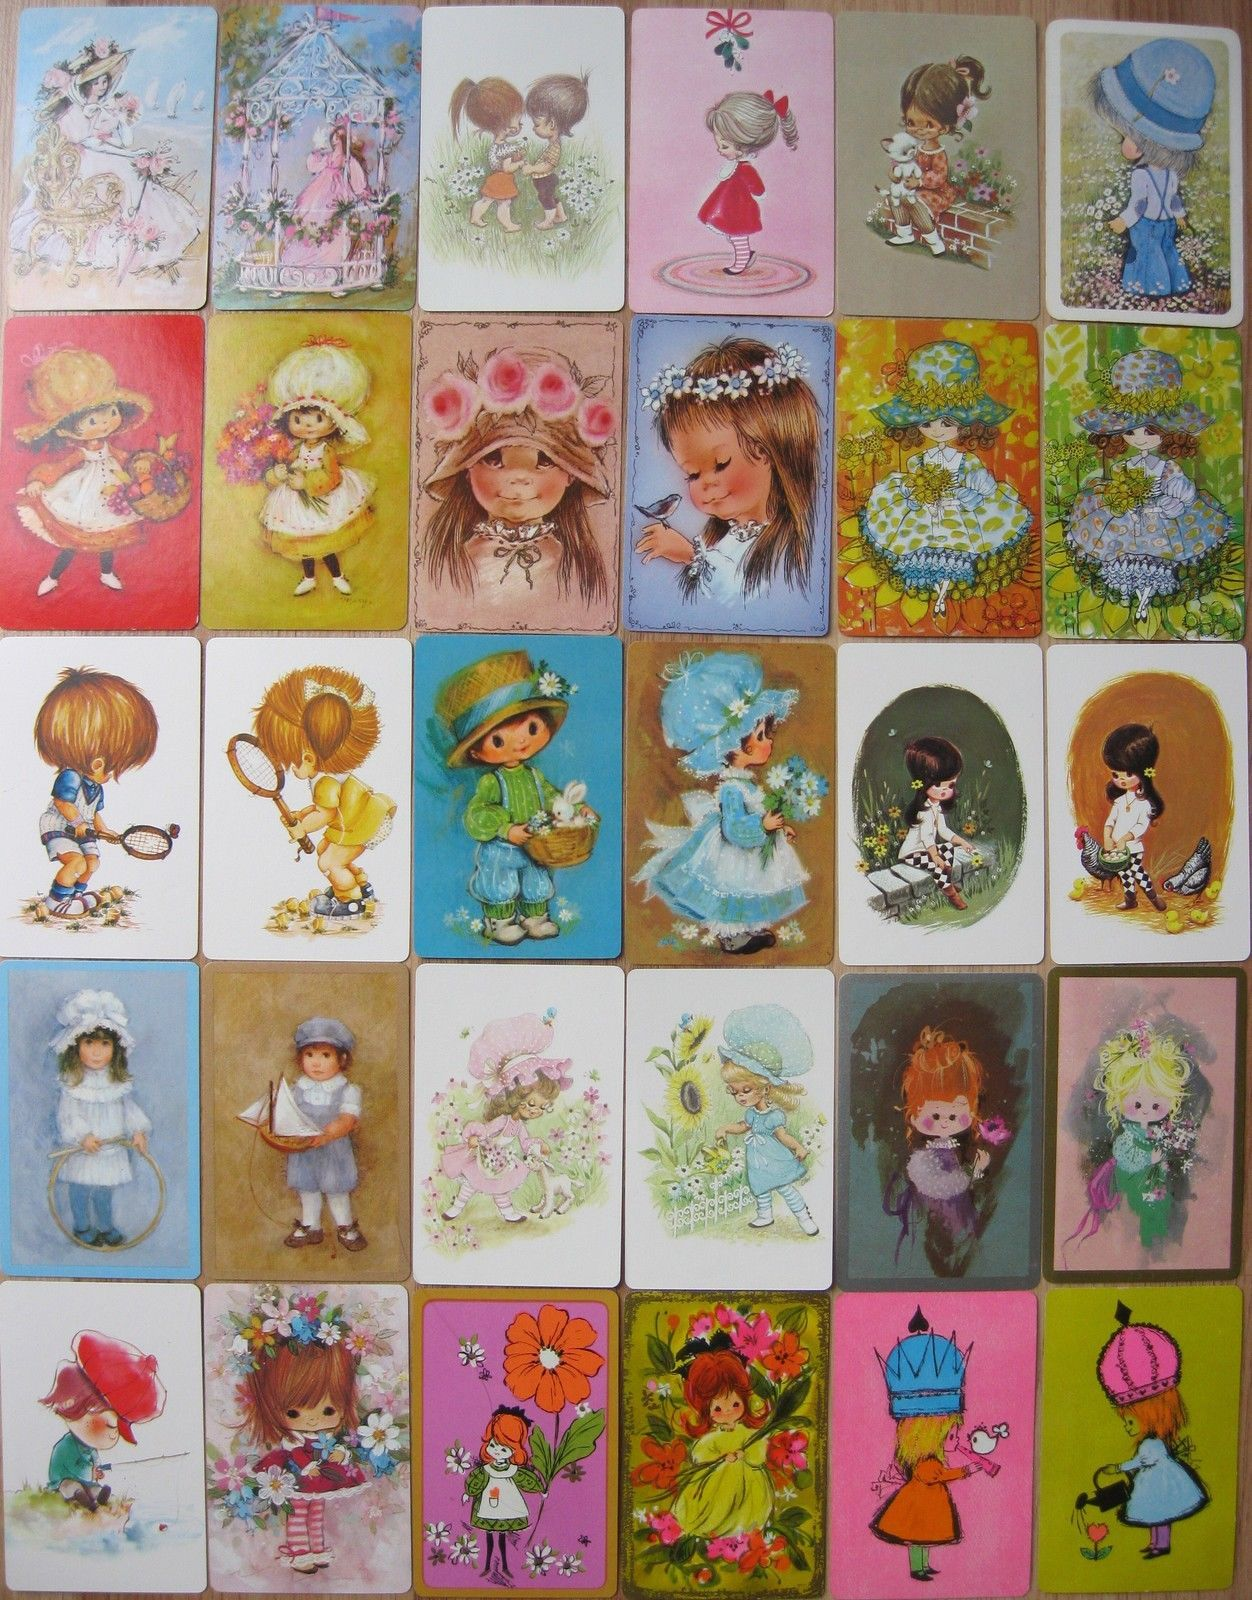 Vintage playing card swap card 1970/'s retro mice mouse